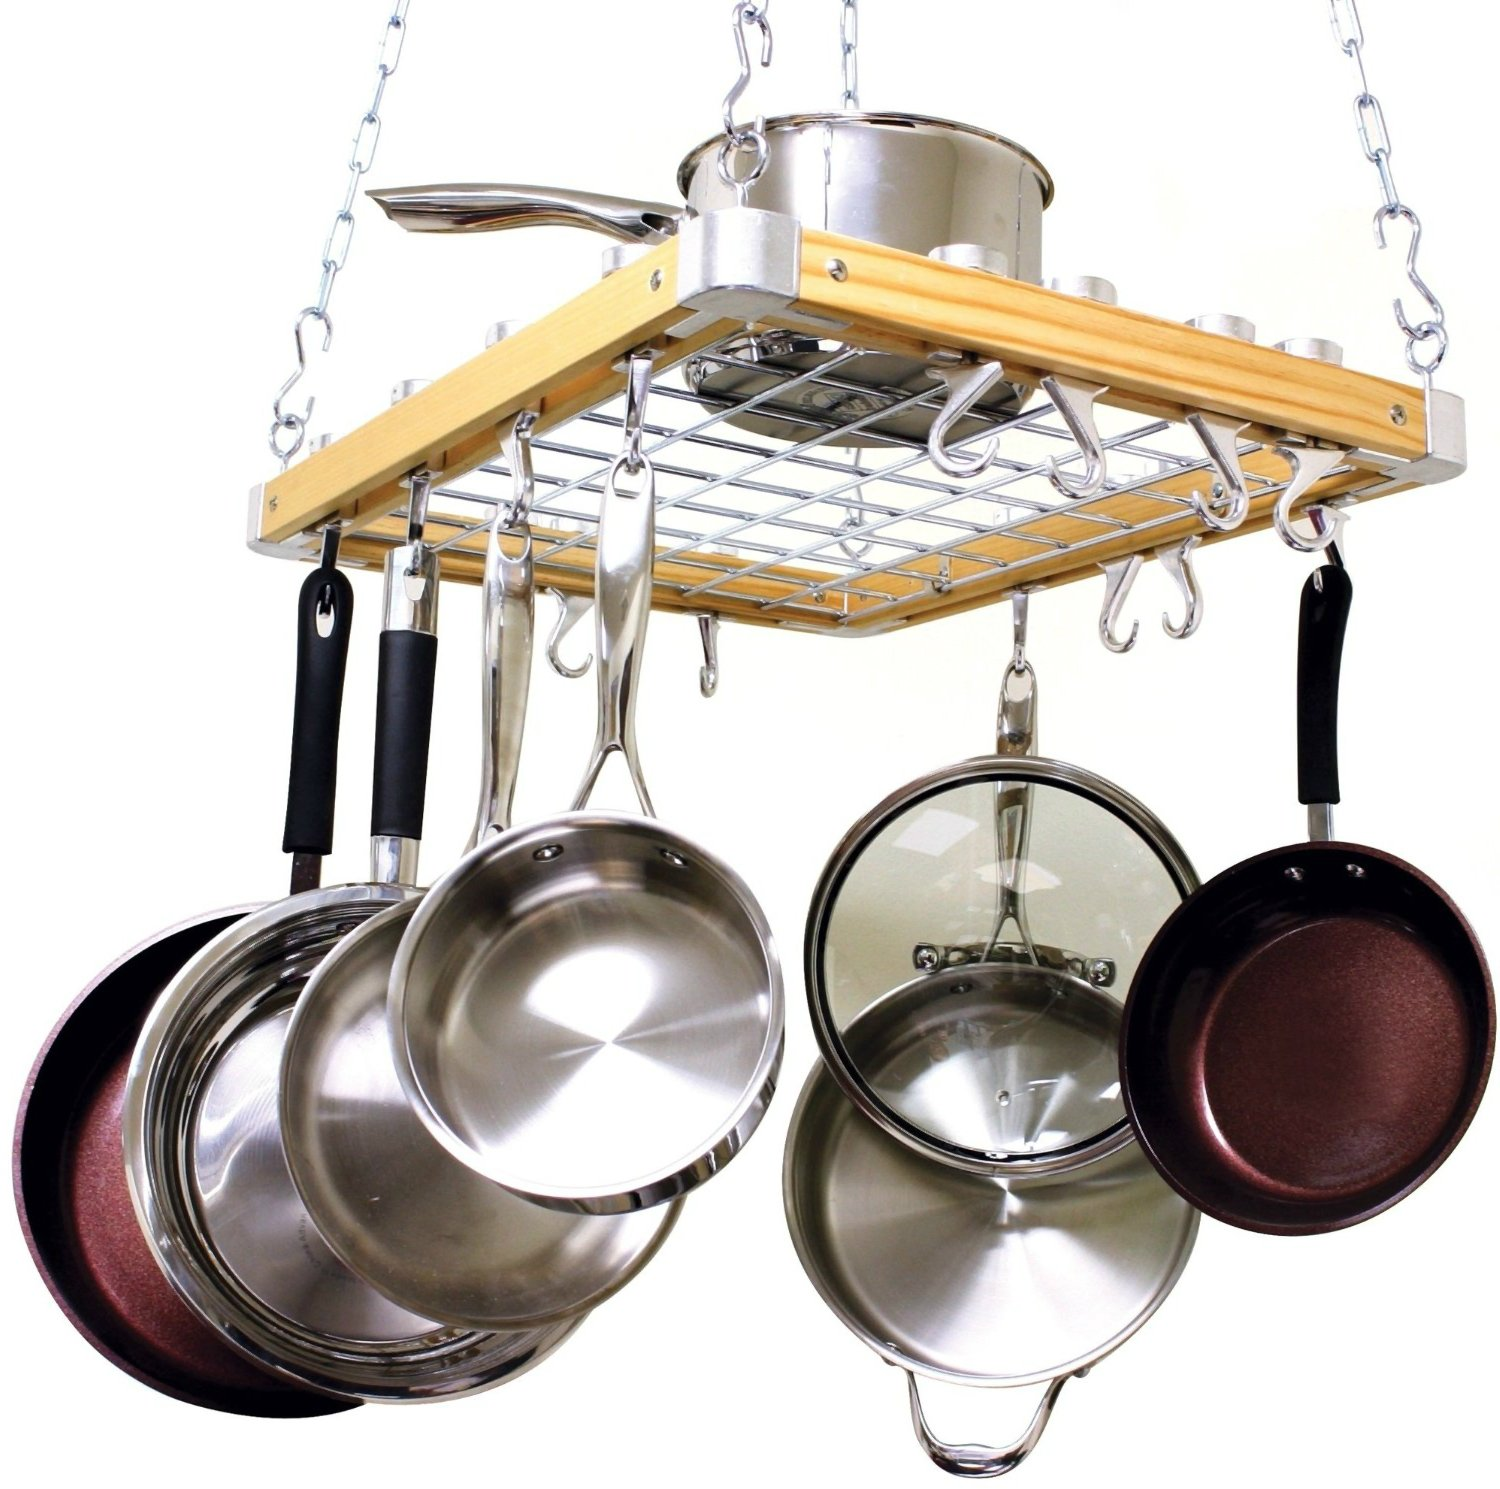 pans inside uncategorized pot hang simple from diy awesome for pan small full of on island hanging size rack easy with holder wire kitchen within fascinating beautiful in and pots storage